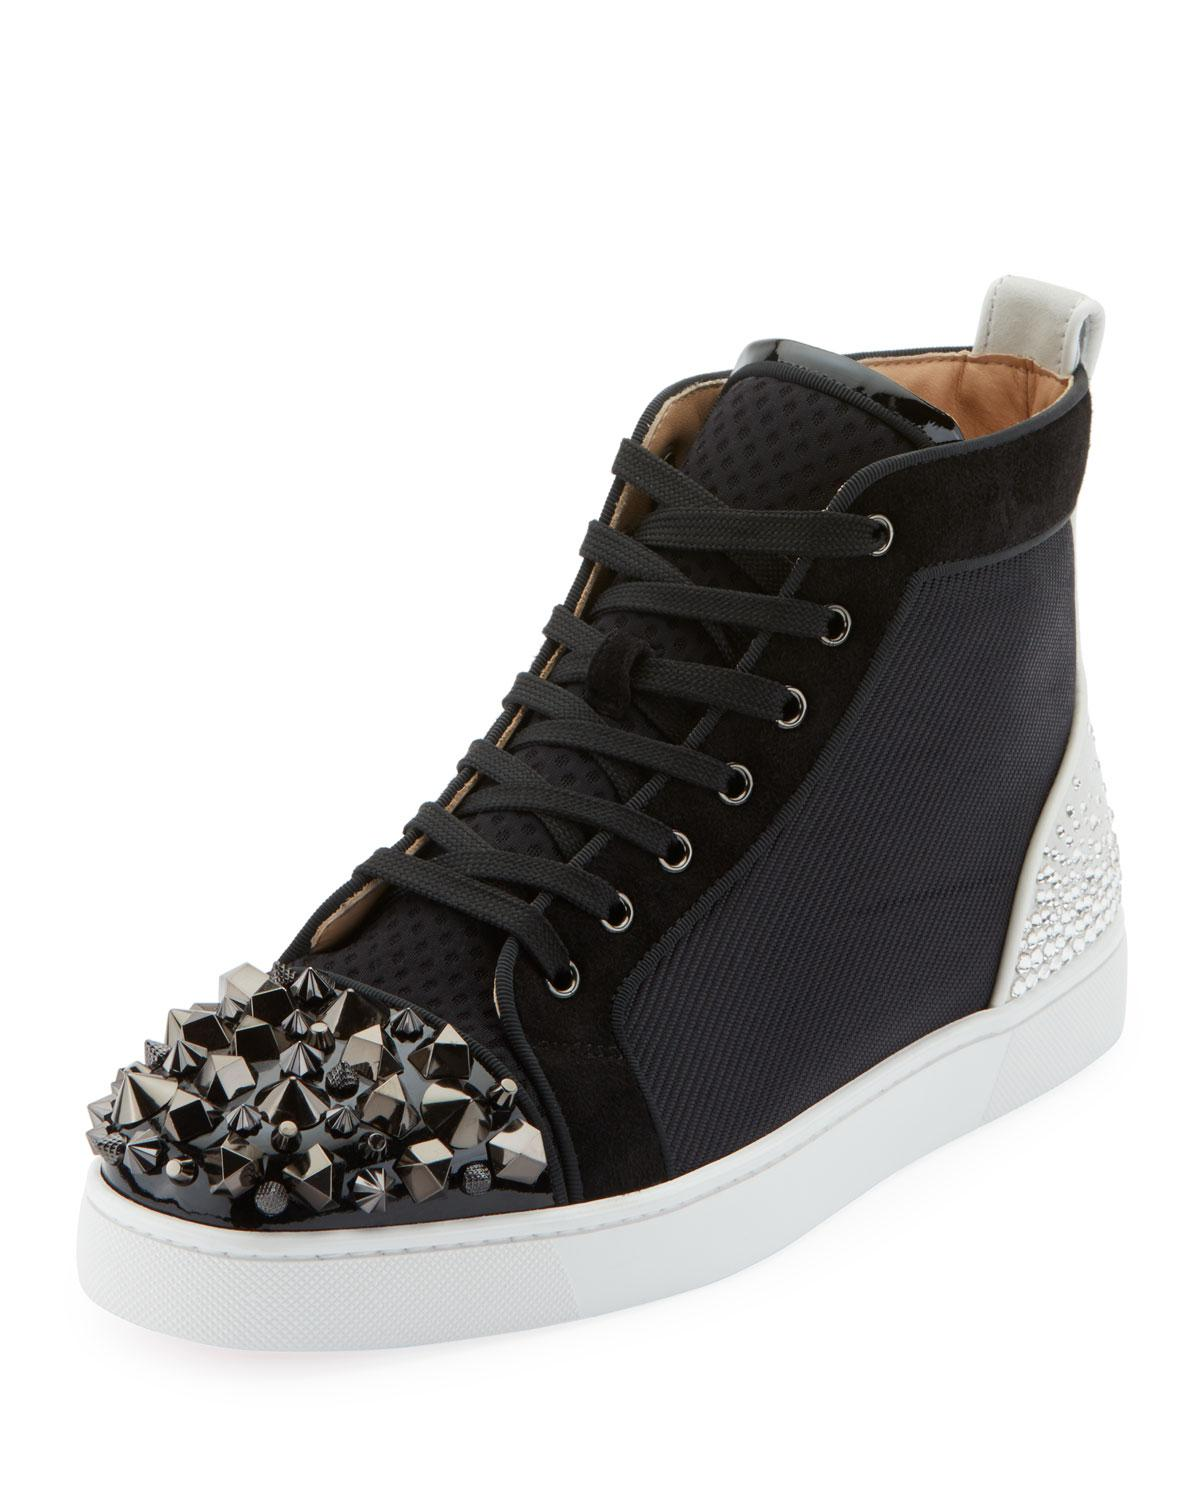 2d6ff475b59 Christian Louboutin Men s Mixed-media Spike Mid-top Sneakers in ...